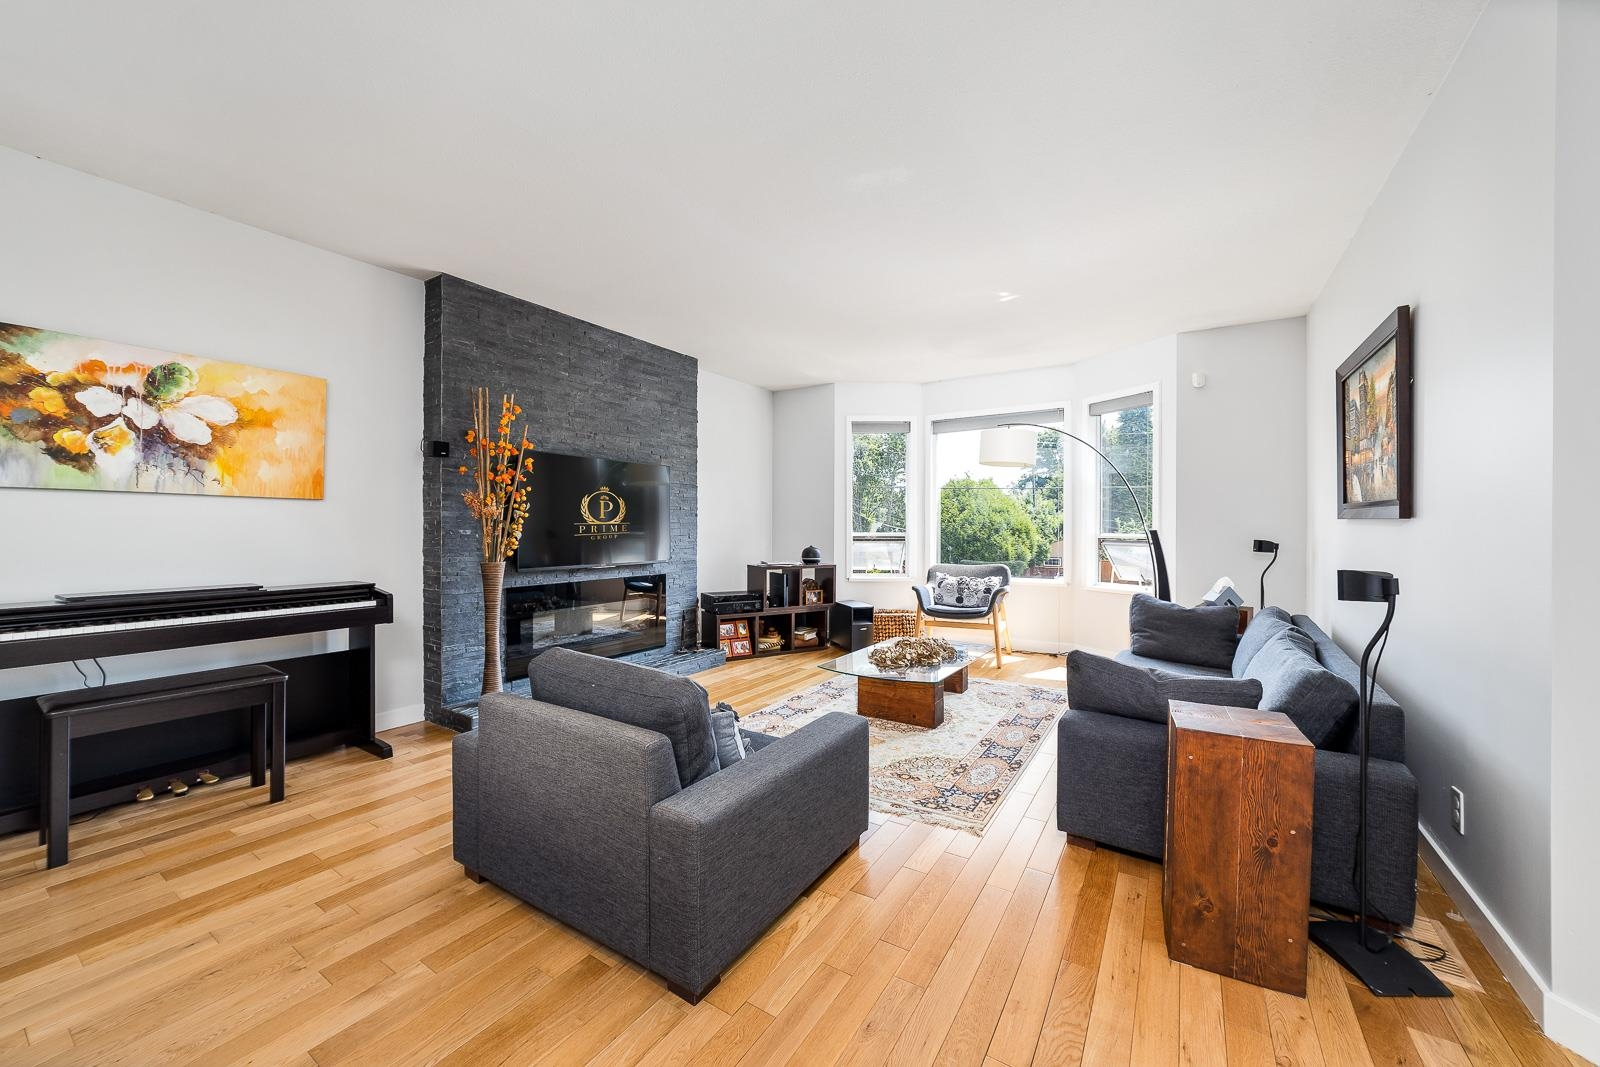 Listing image of 1680 HOPE ROAD